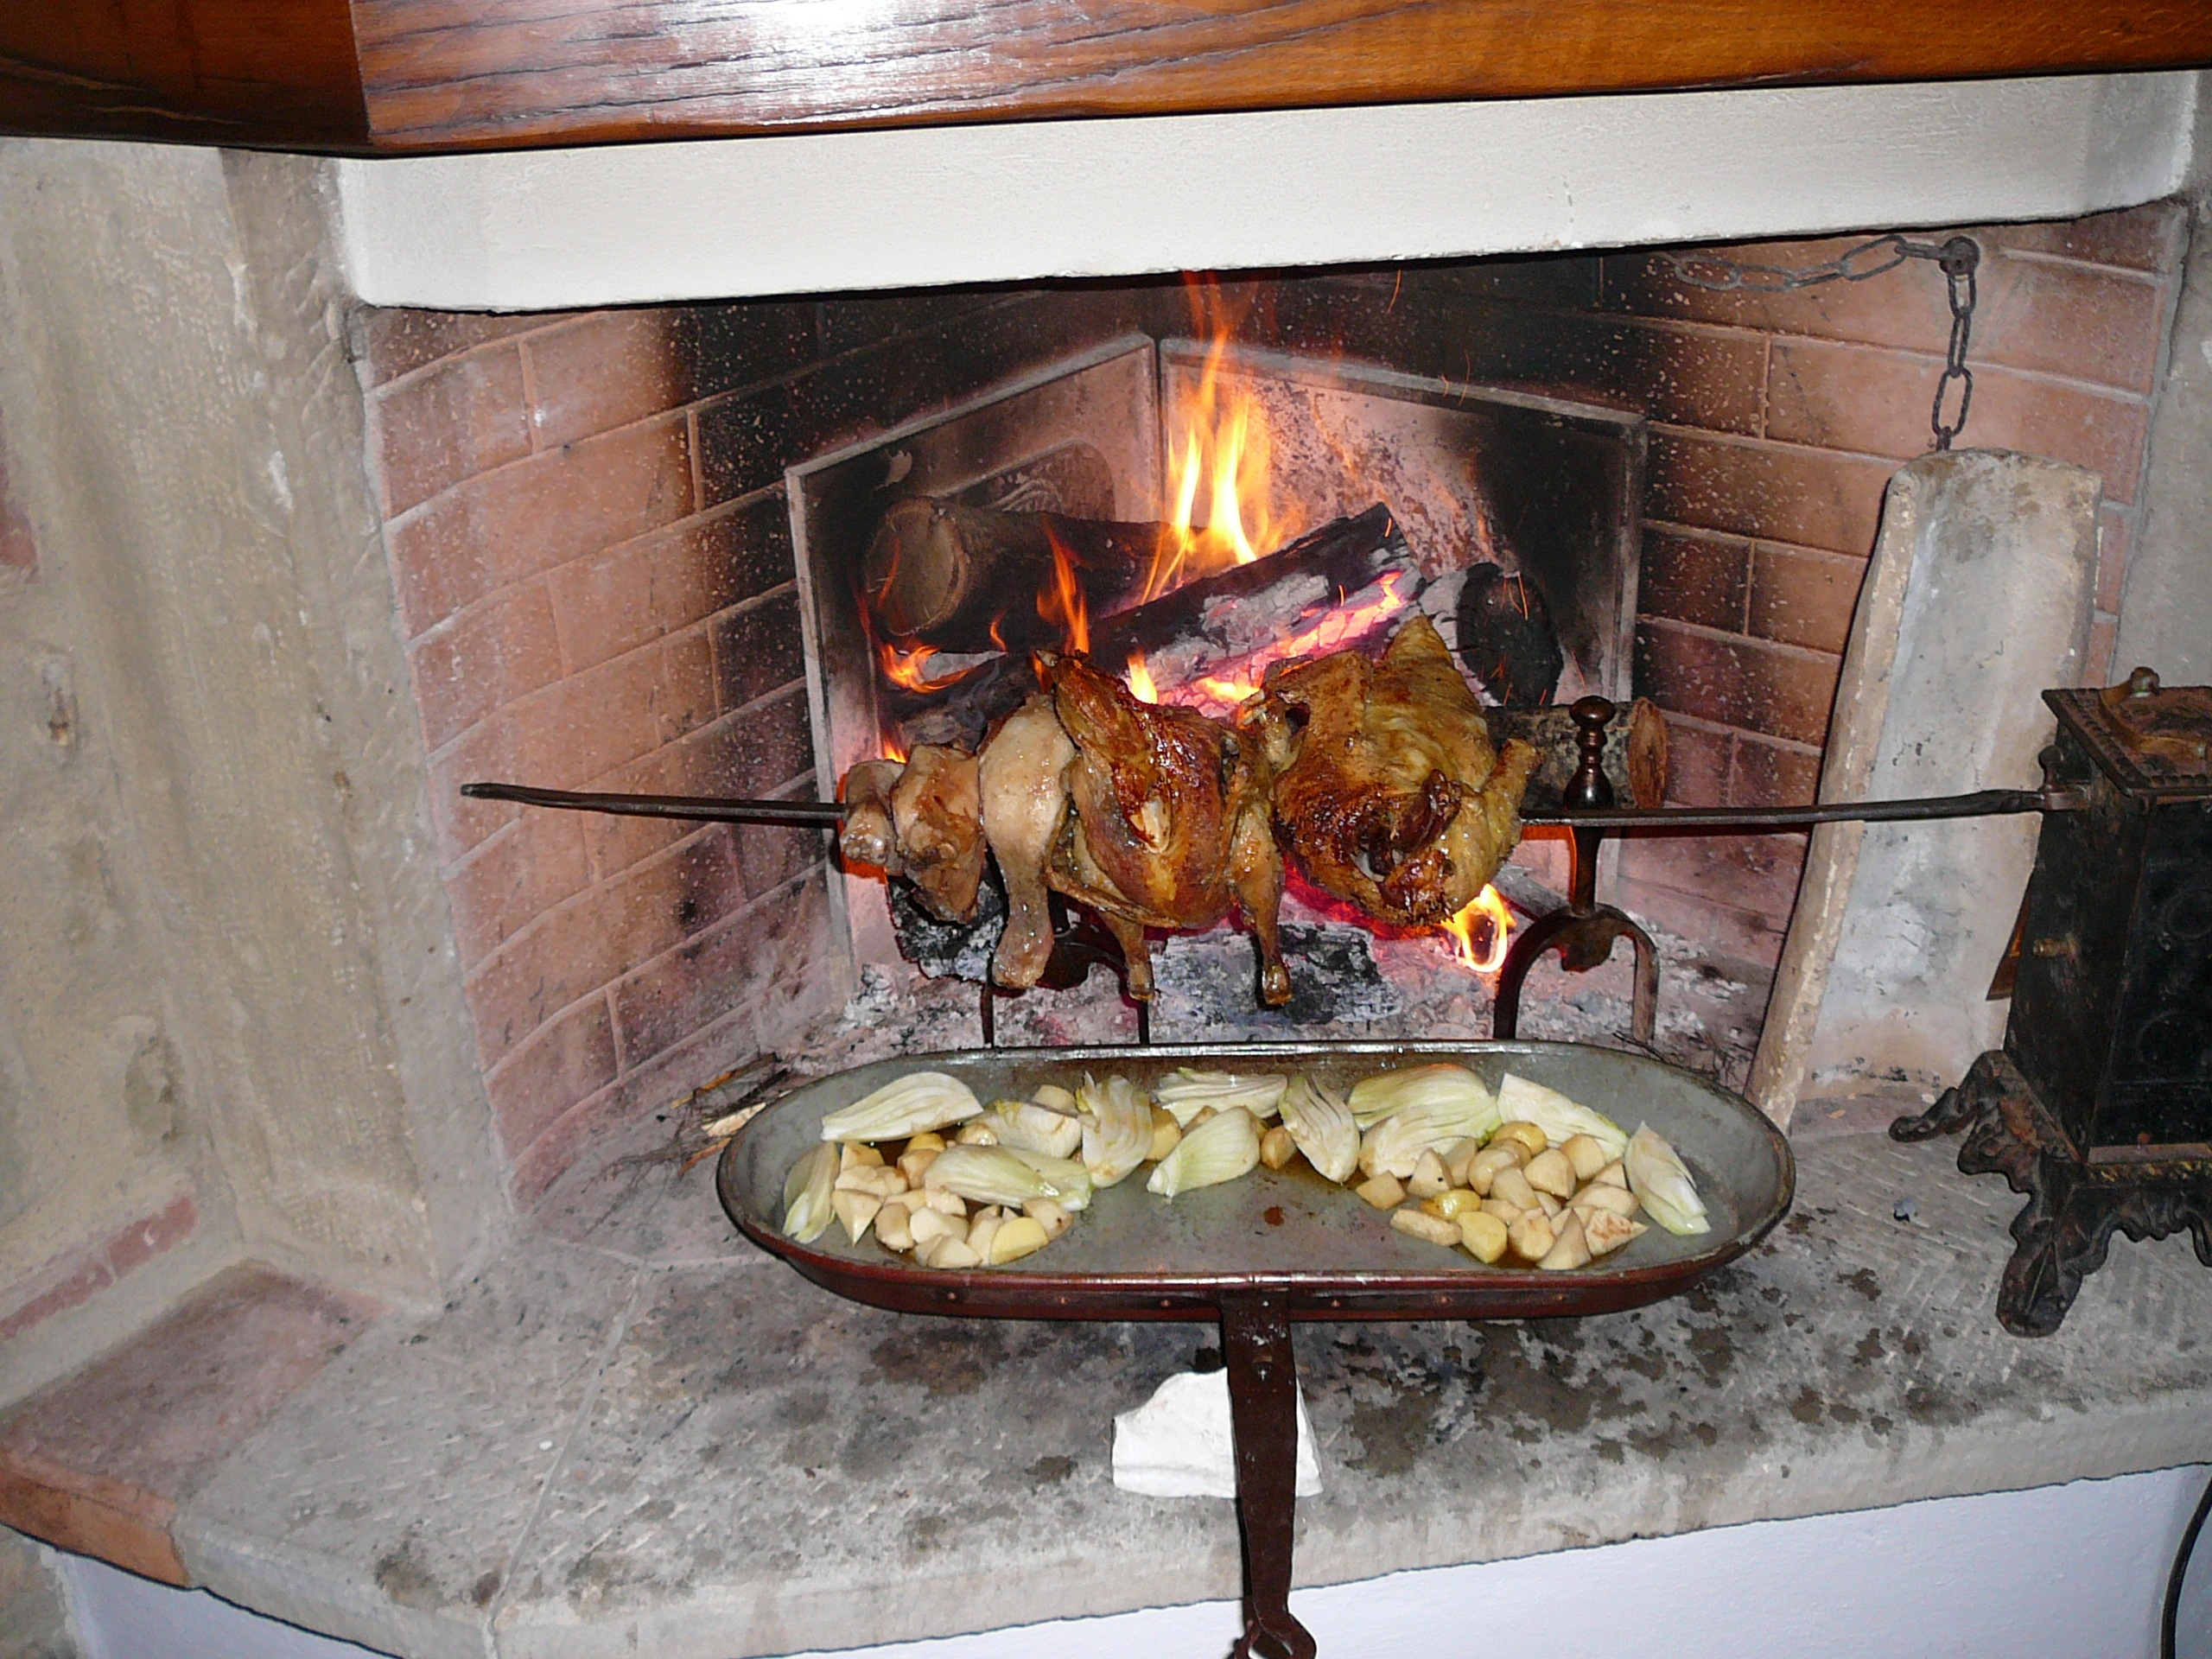 Dinner on an open fire \u2013 Chicken Quail turning on a spit in our kitchen fireplace & Dinner on an open fire \u2013 Chicken Quail turning on a spit in our ...